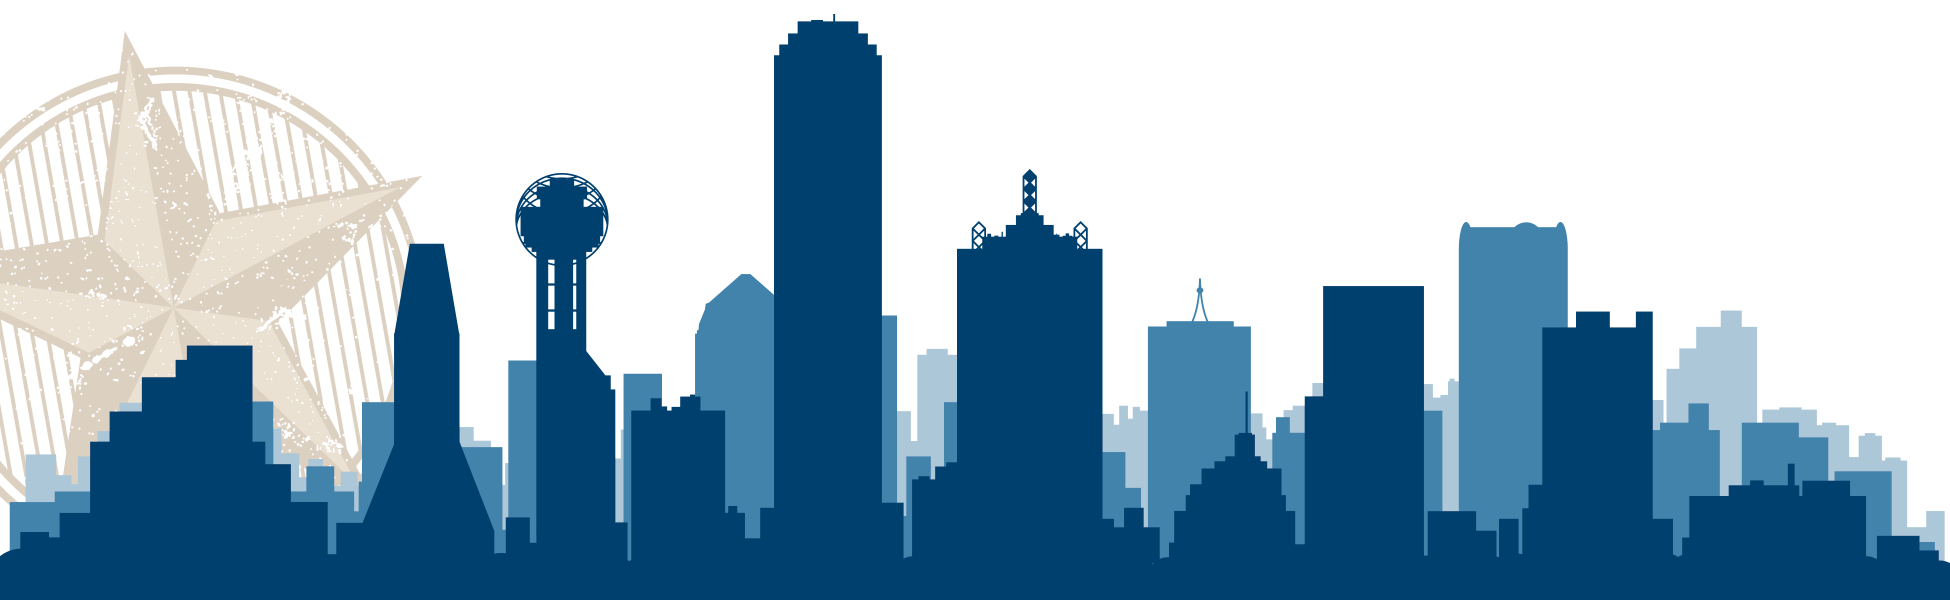 aslms-2018-homepage-bnr-dallas-skyline